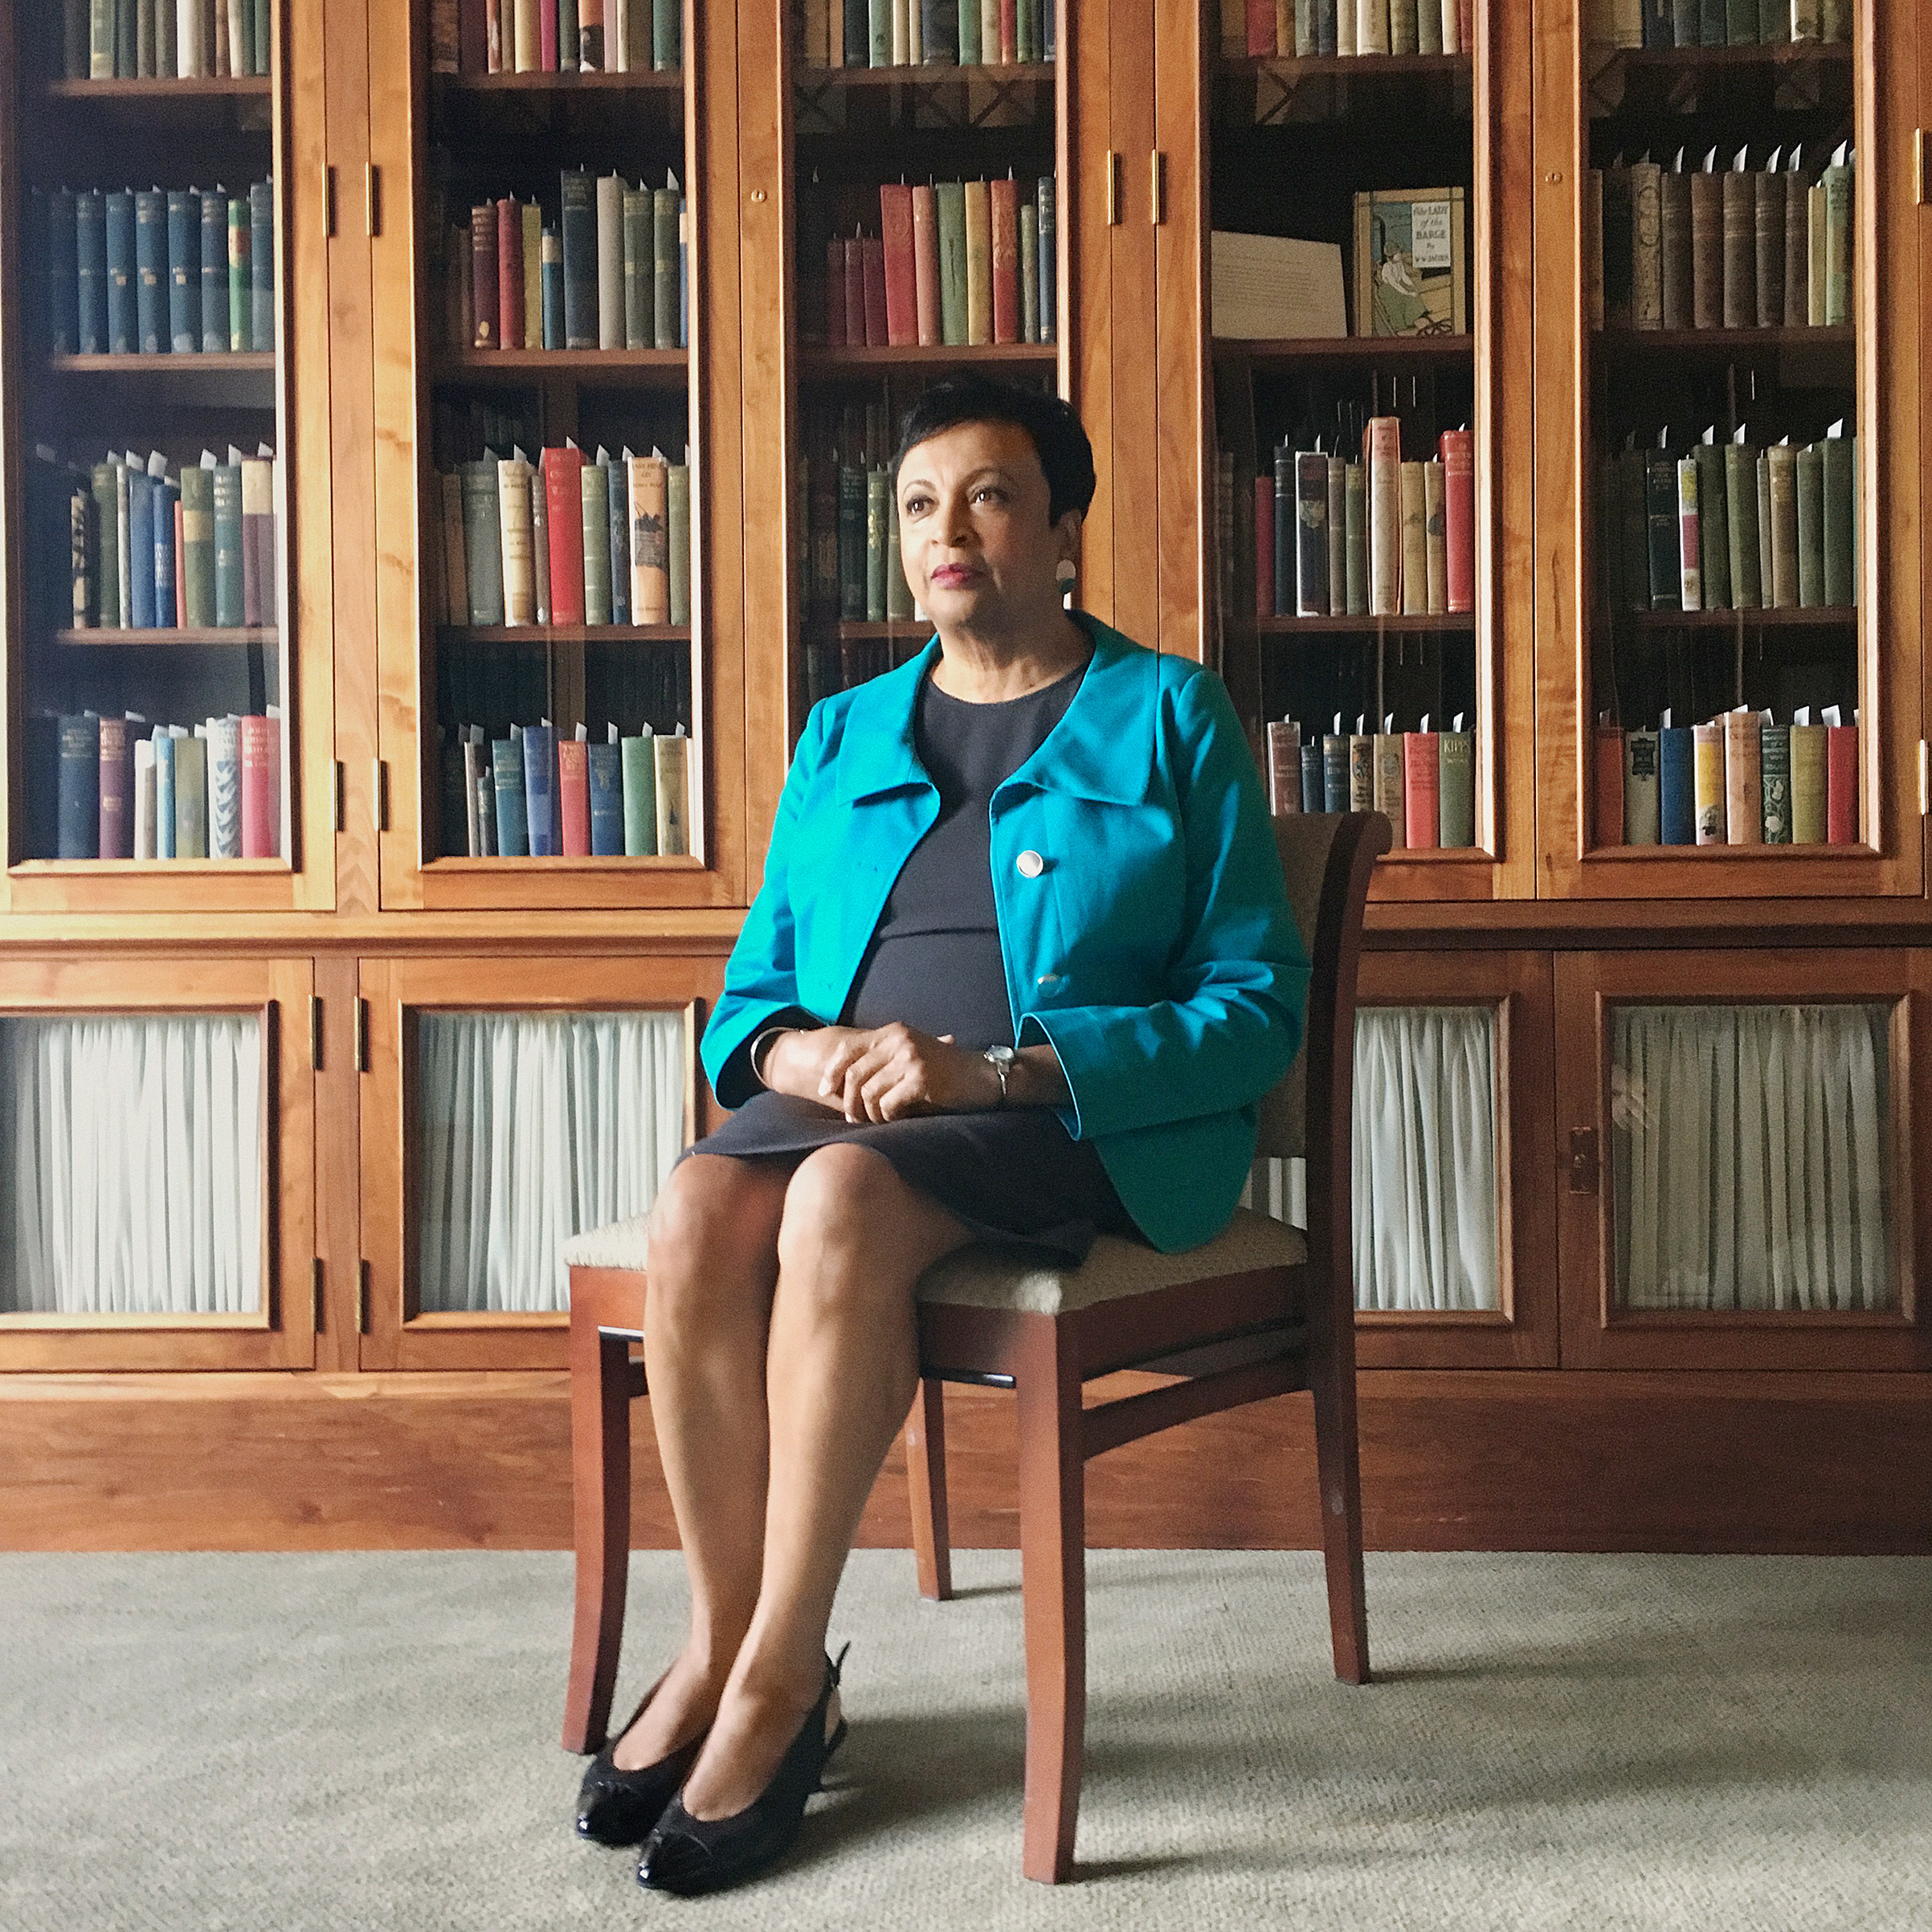 Portrait of Carla Hayden, photographed at the Library of Congress in Washington, DC, August 31, 2016.